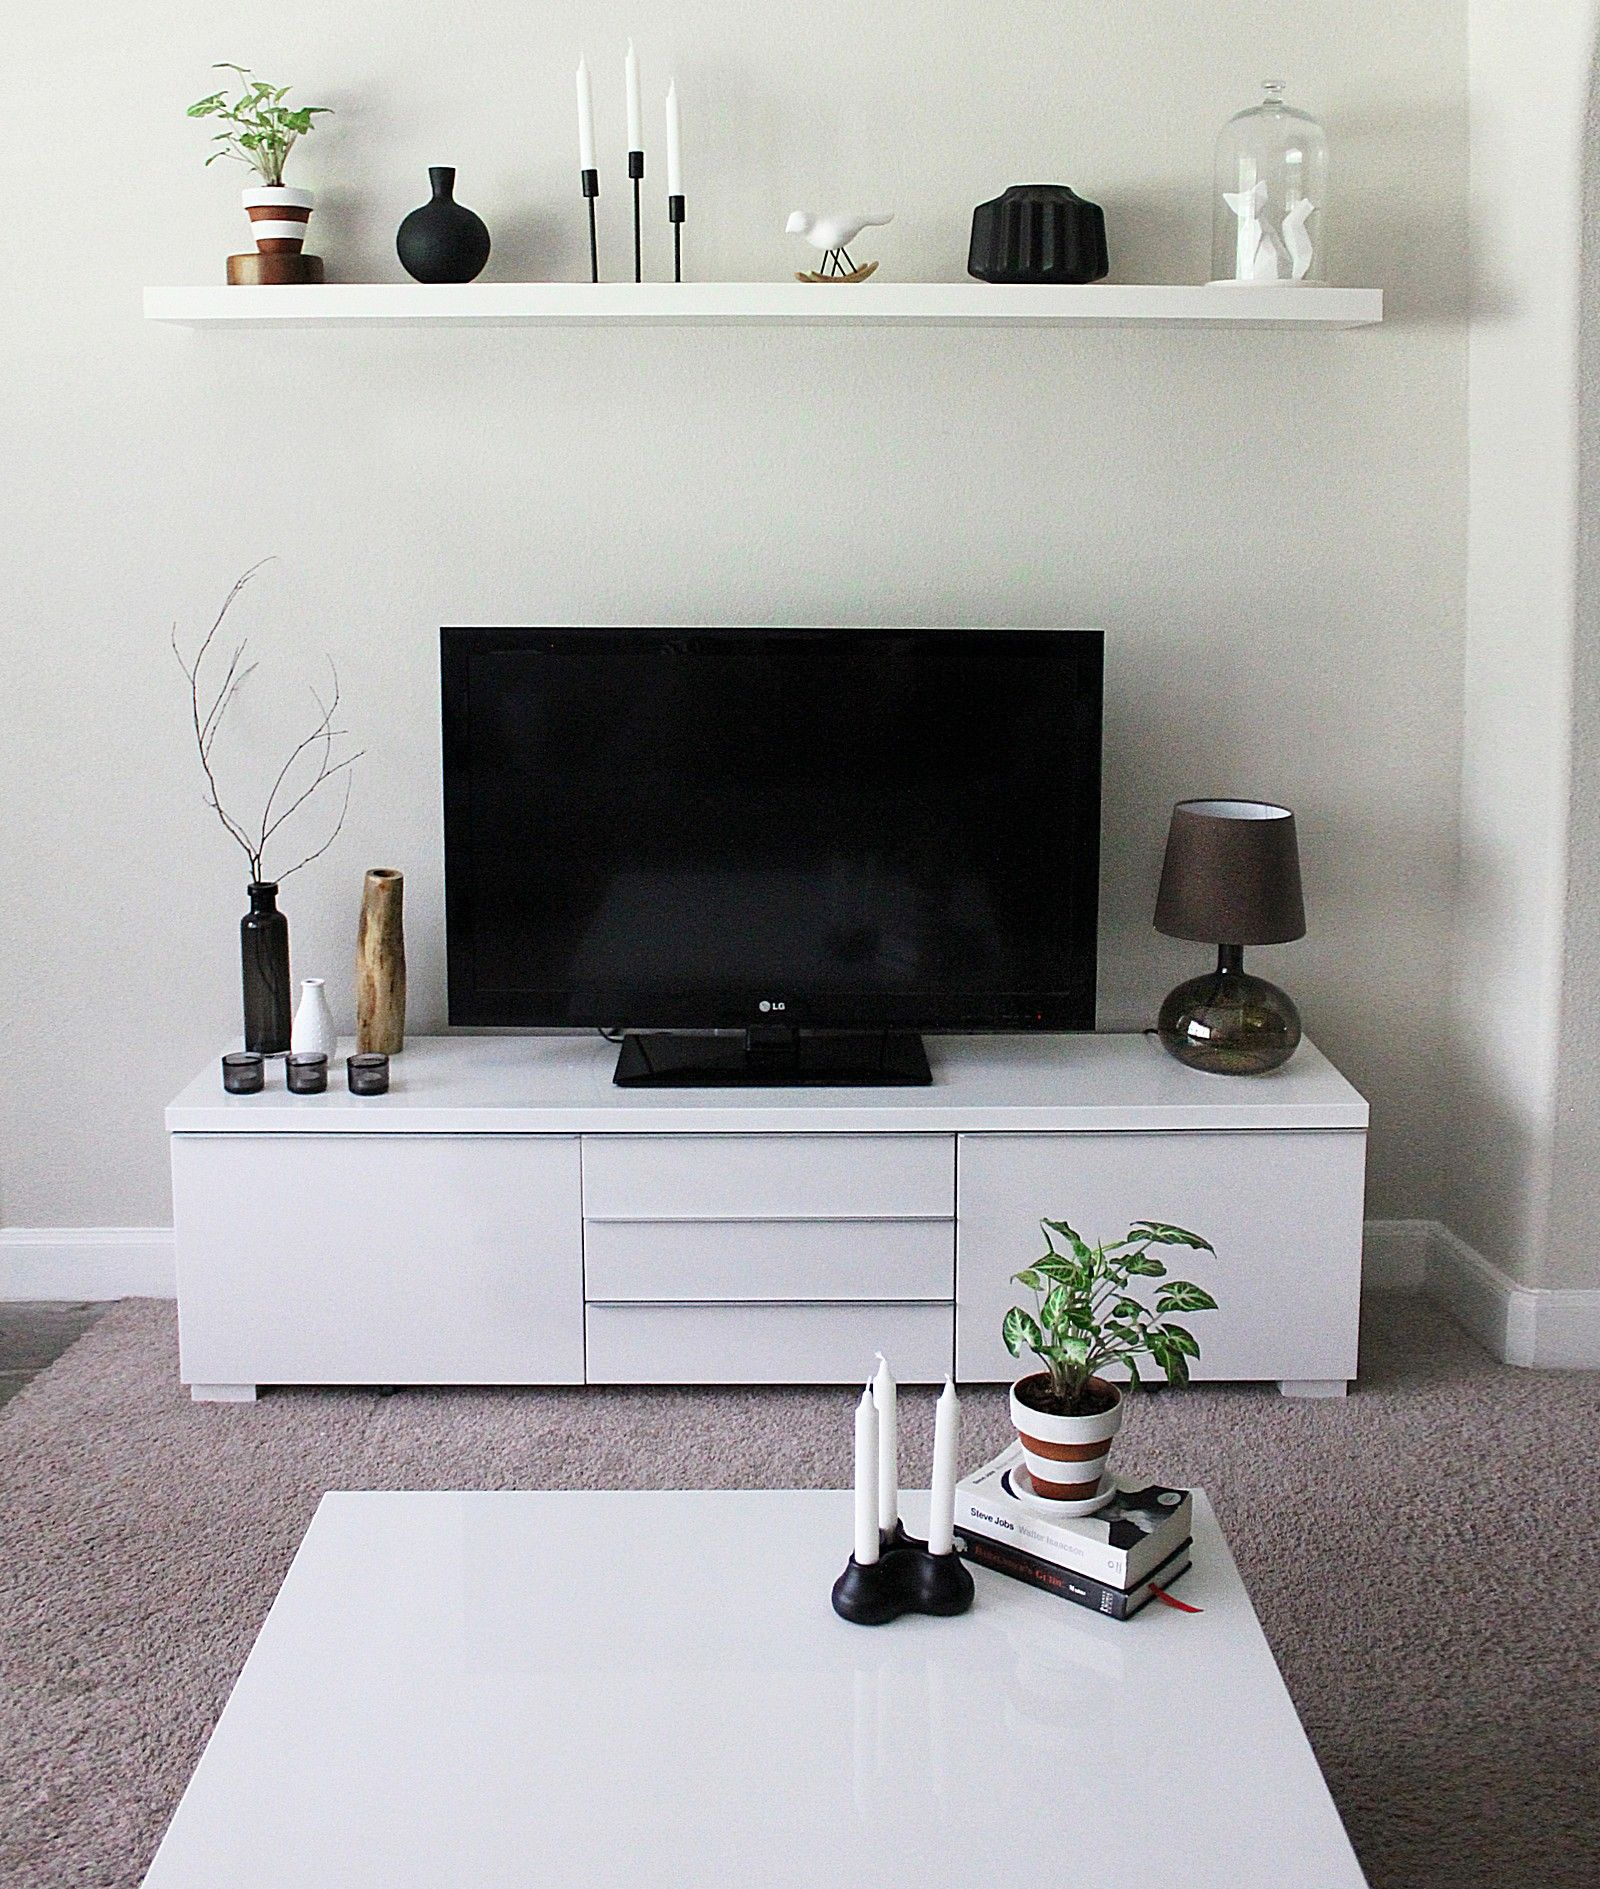 Minimalist TV Stand And Cabinet IKEA Besta